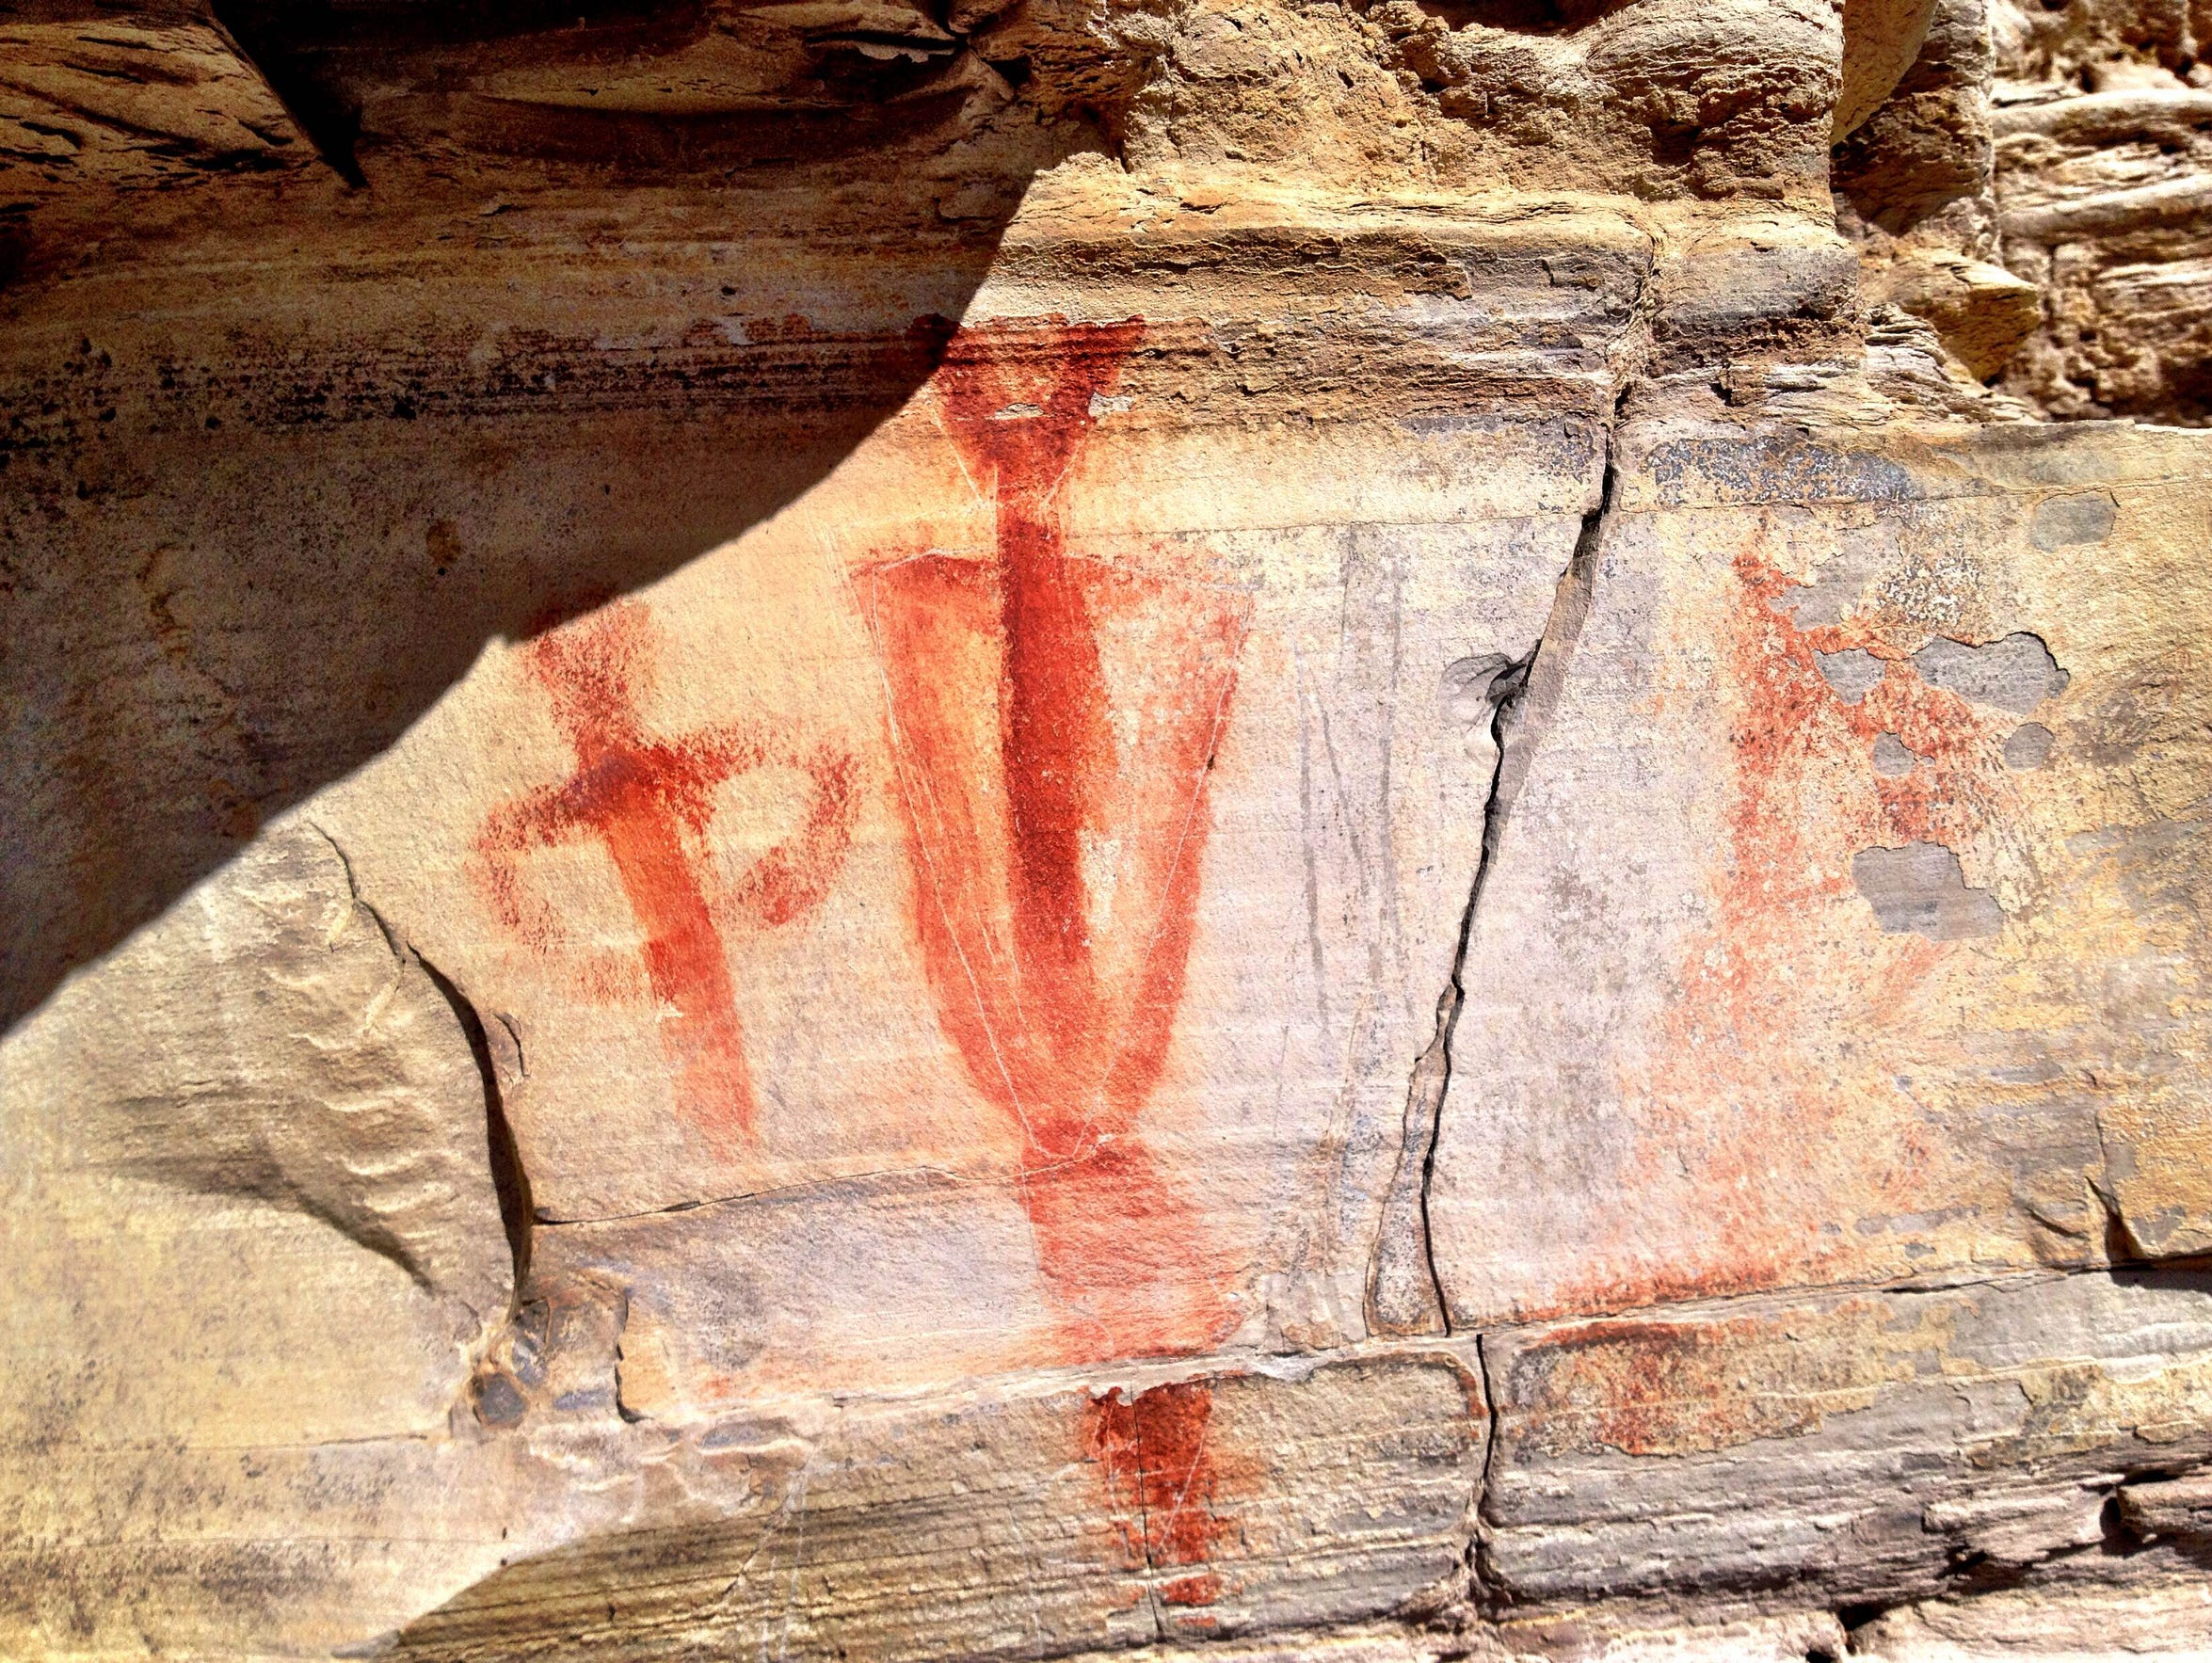 Pictographs at Bear Gulch Pictographs near Lewistown.